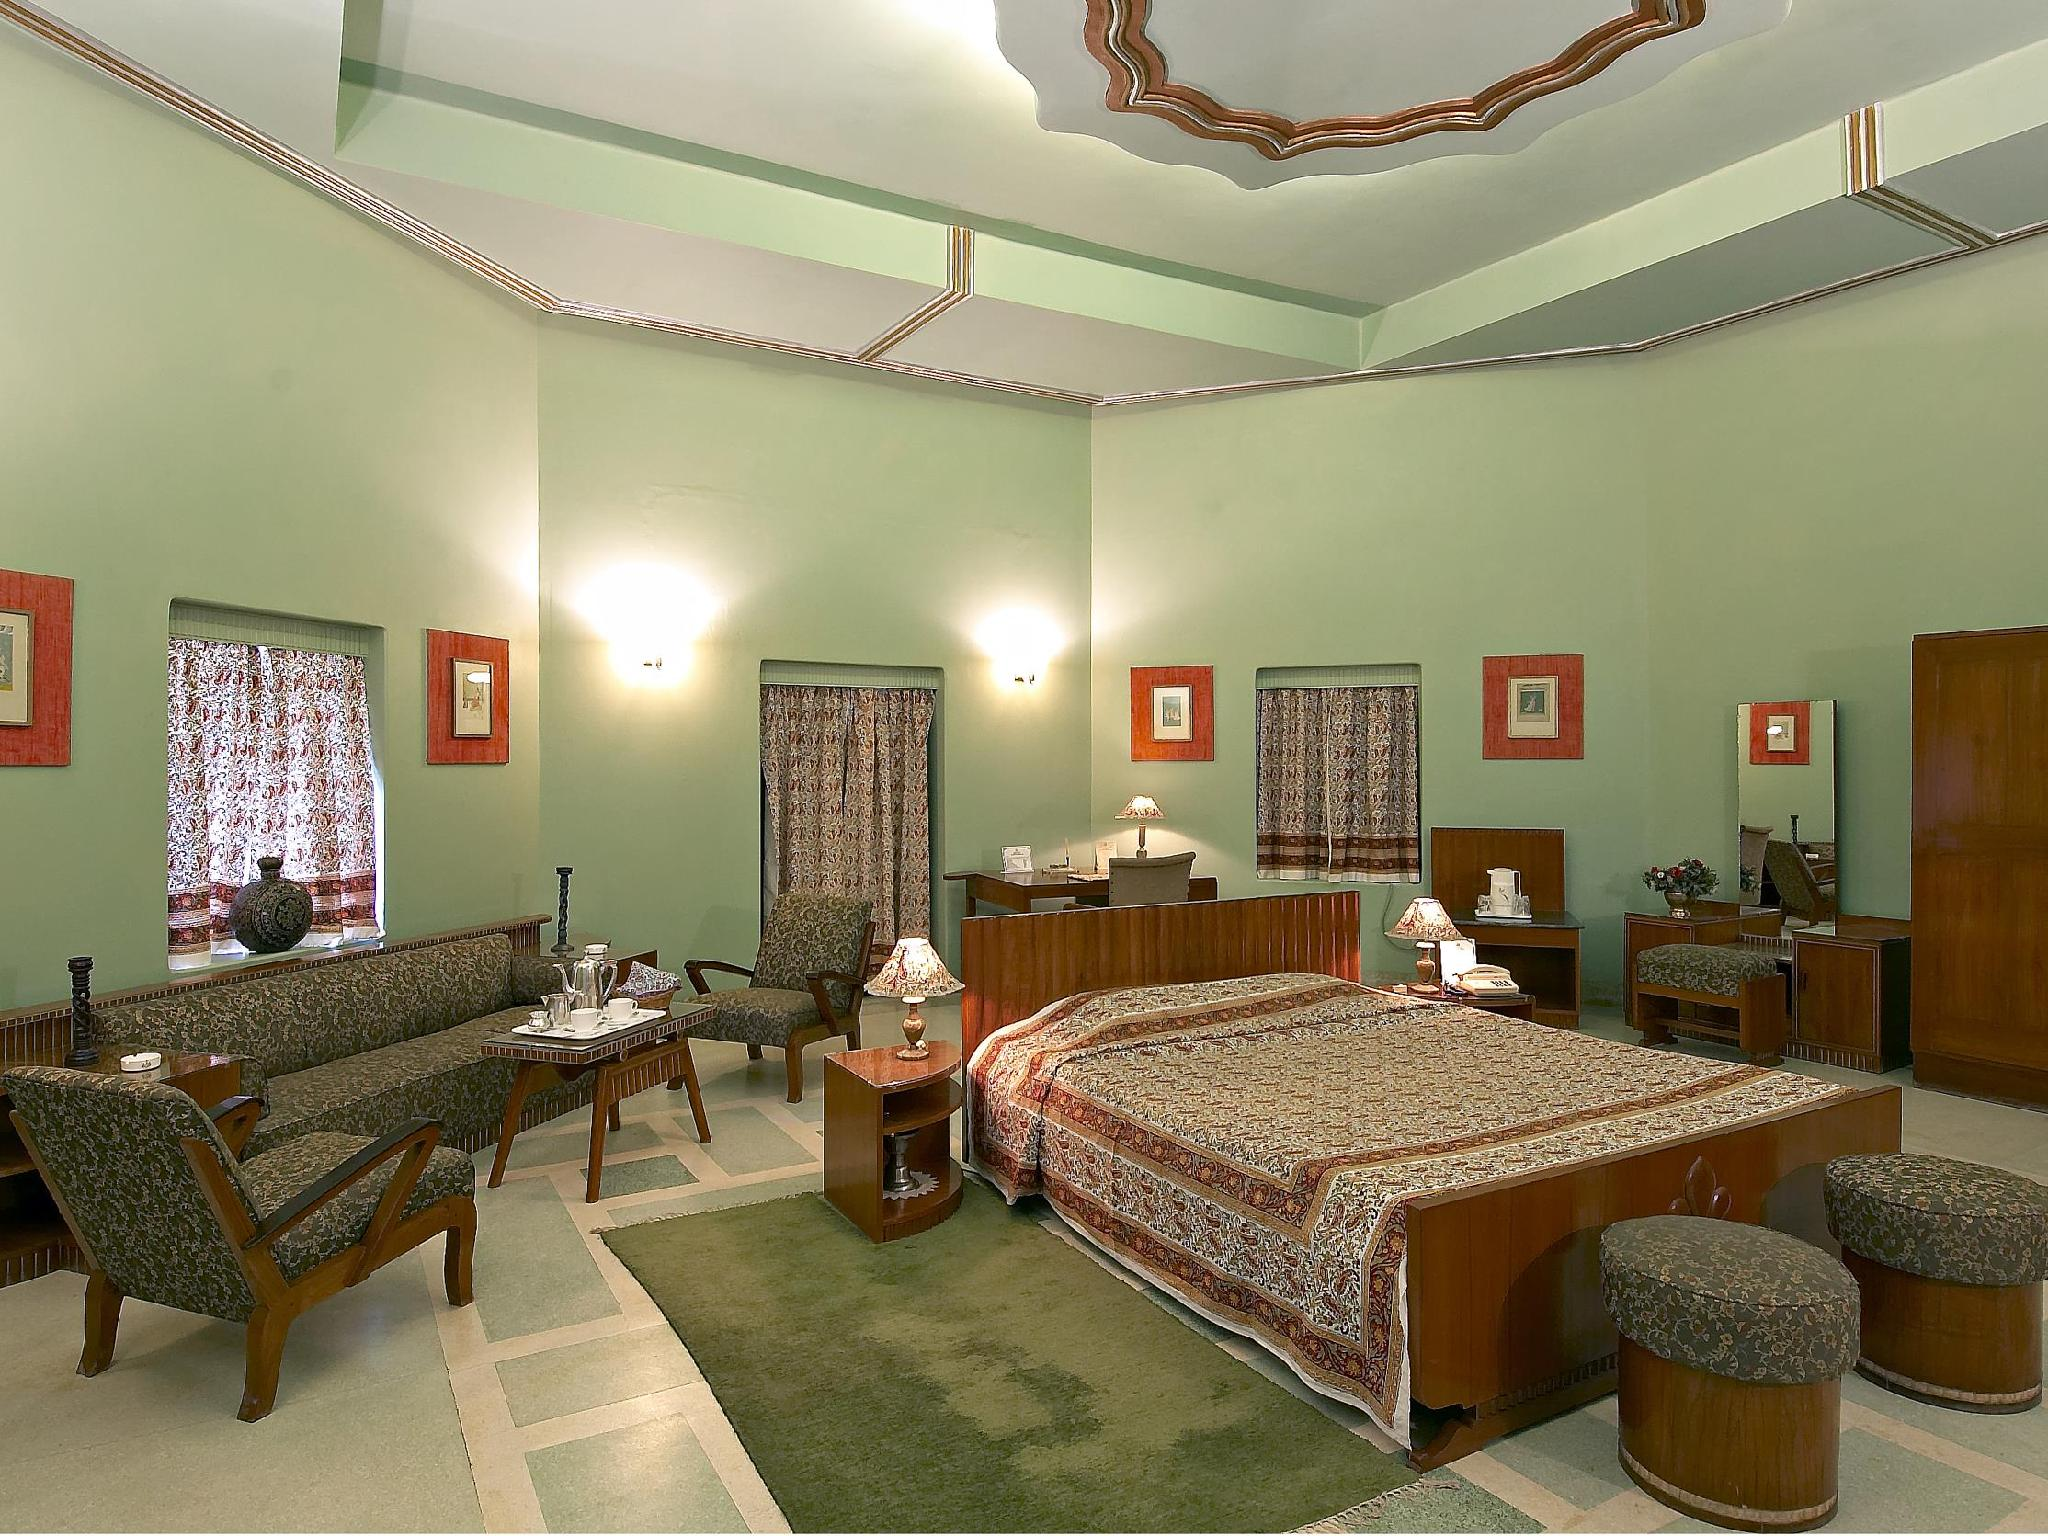 WelcomHotel Khimsar Fort & Dunes, Nagaur